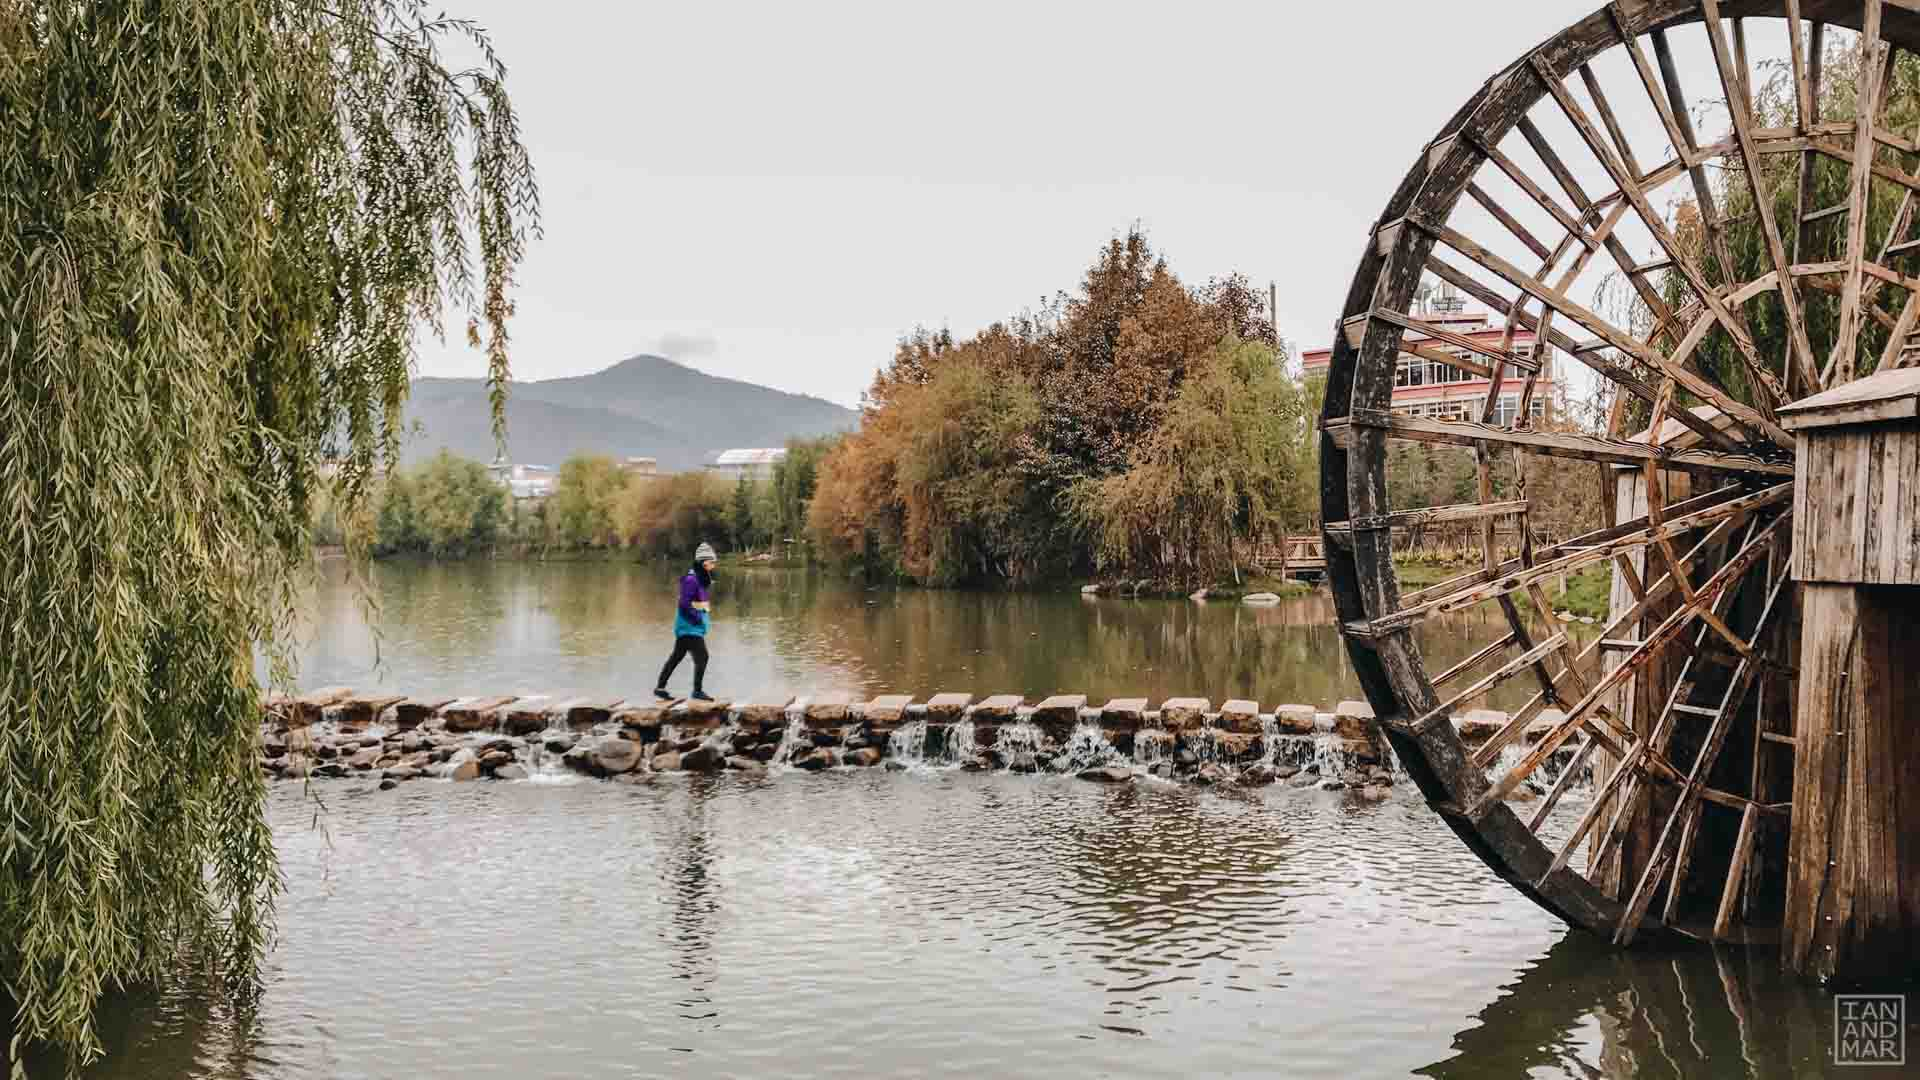 man crossing river with water wheel